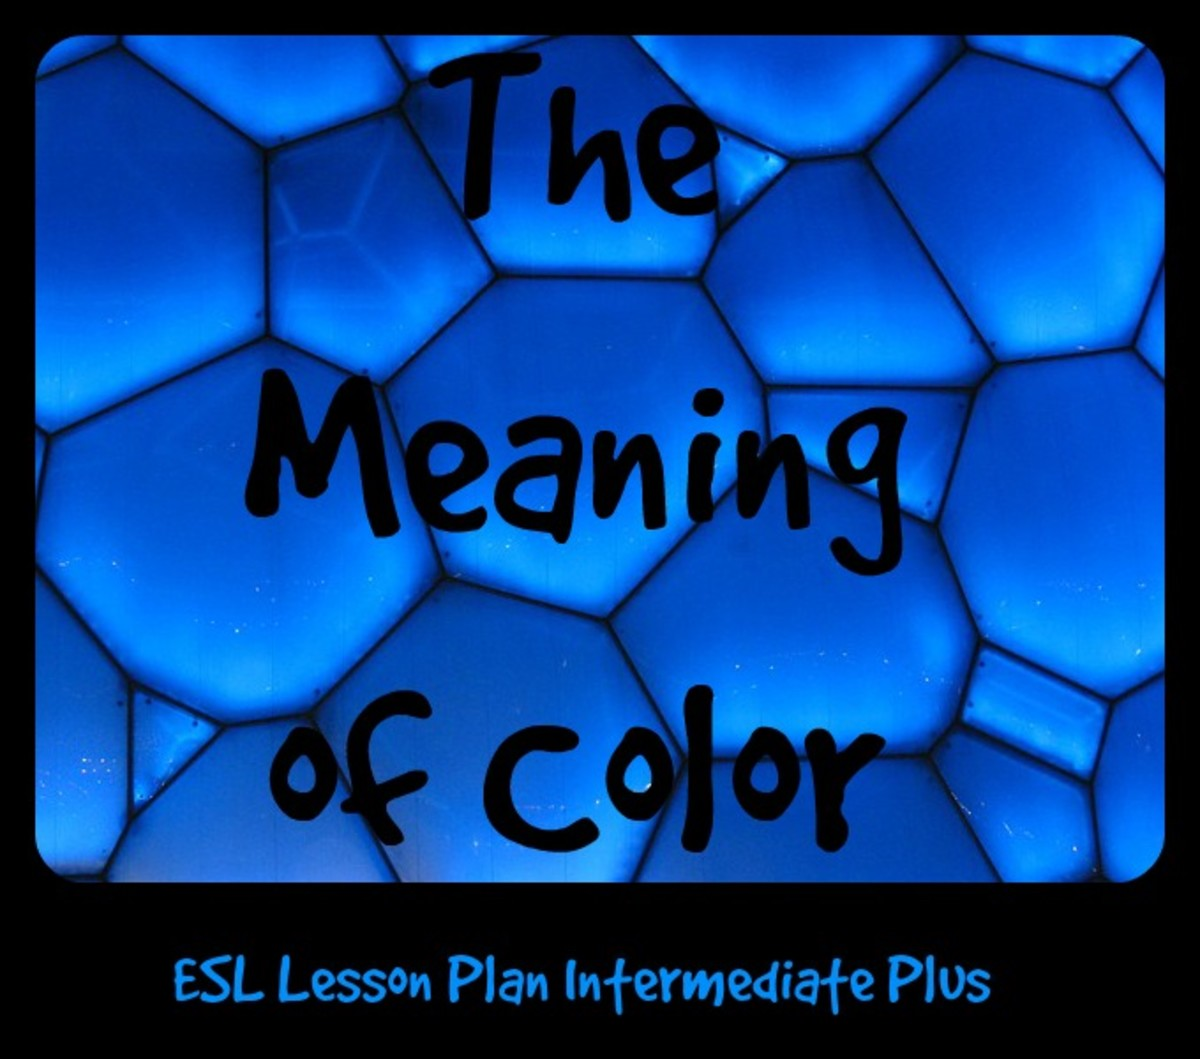 ESL Lesson Plan Intermediate Plus - The Meaning of Color